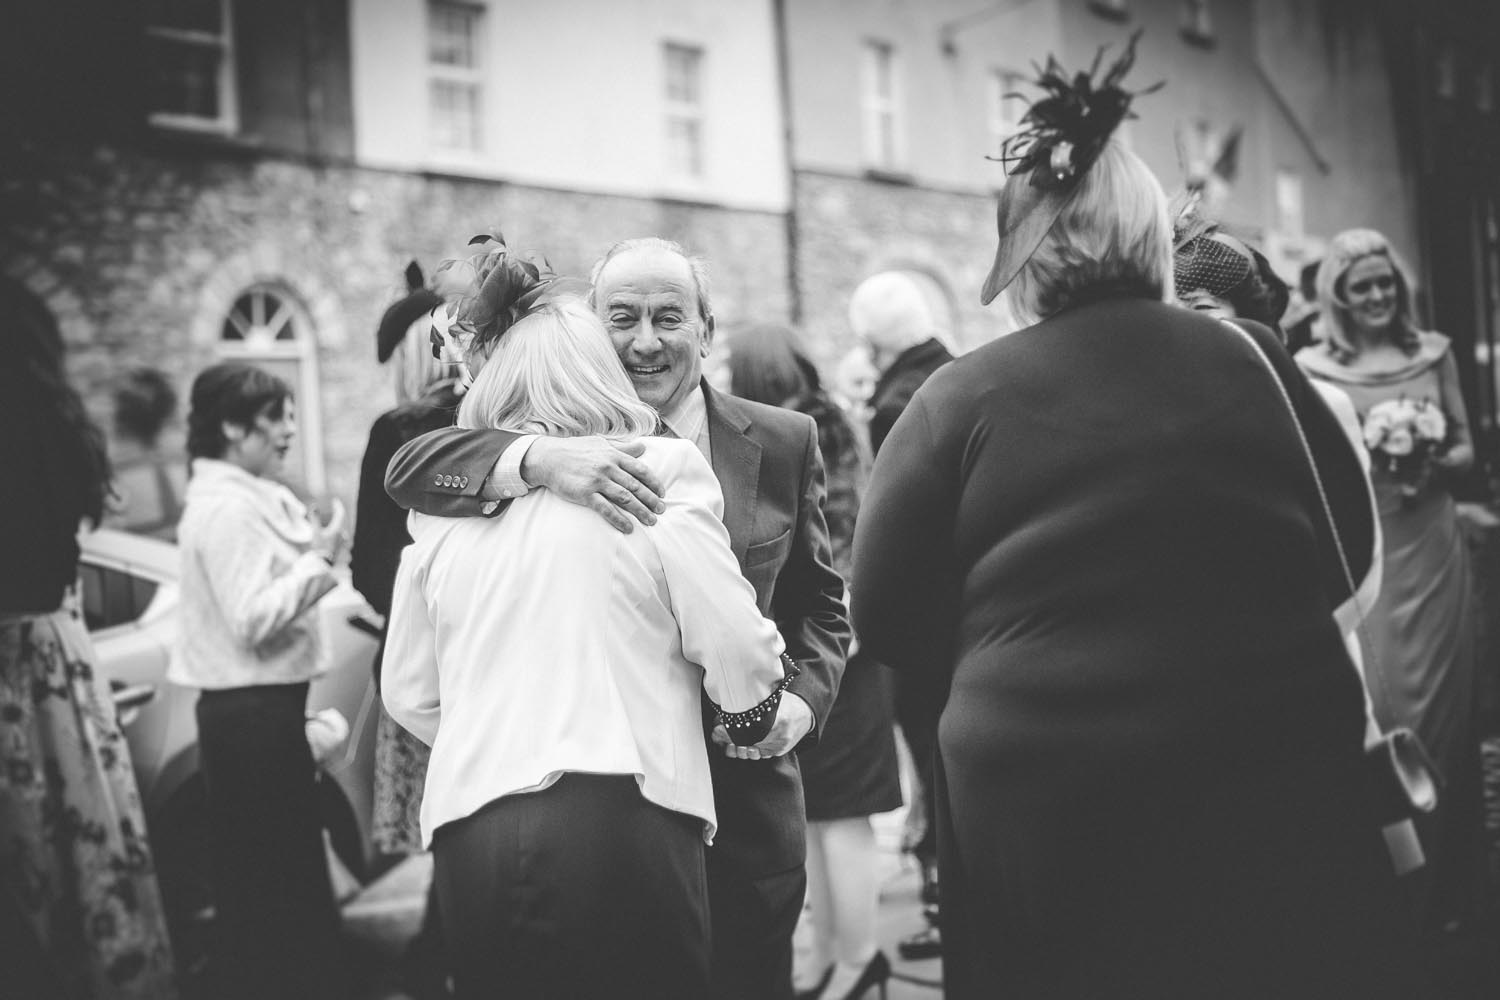 Step House wedding photographer Carlow Borris061.jpg